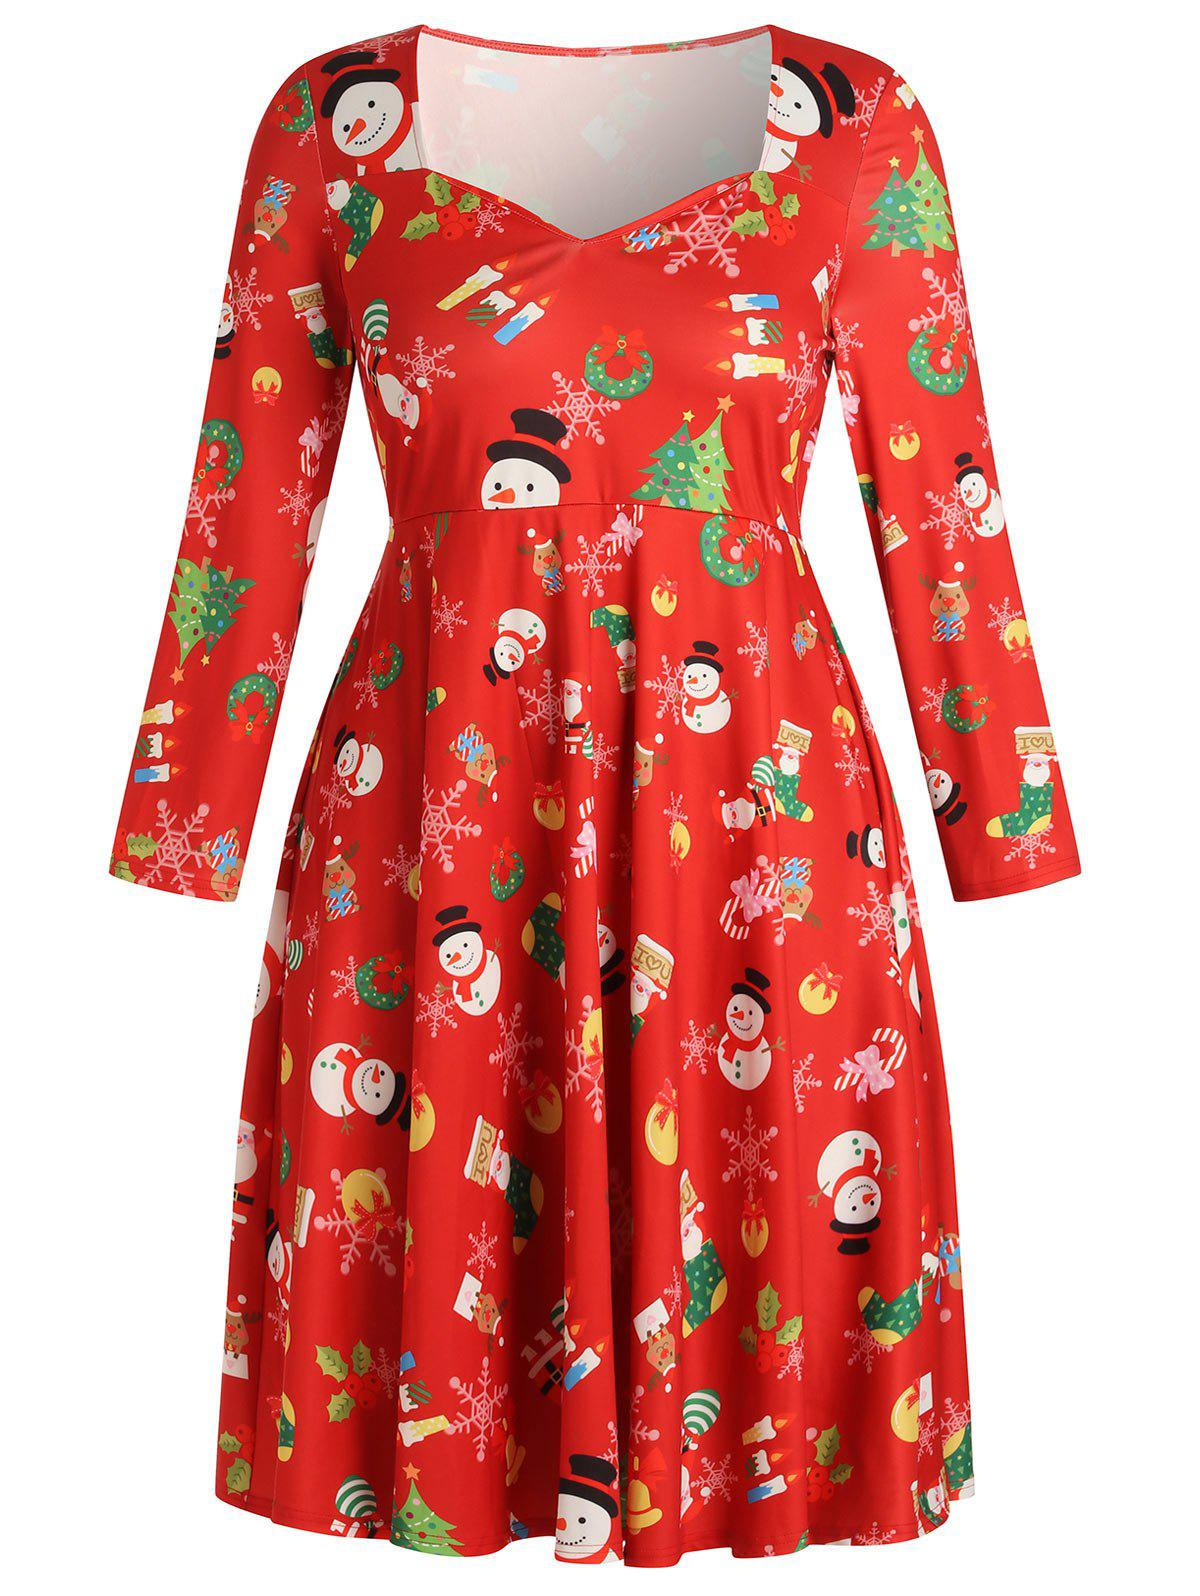 Fashion Christmas Plus Size Printed Fit and Flare Dress